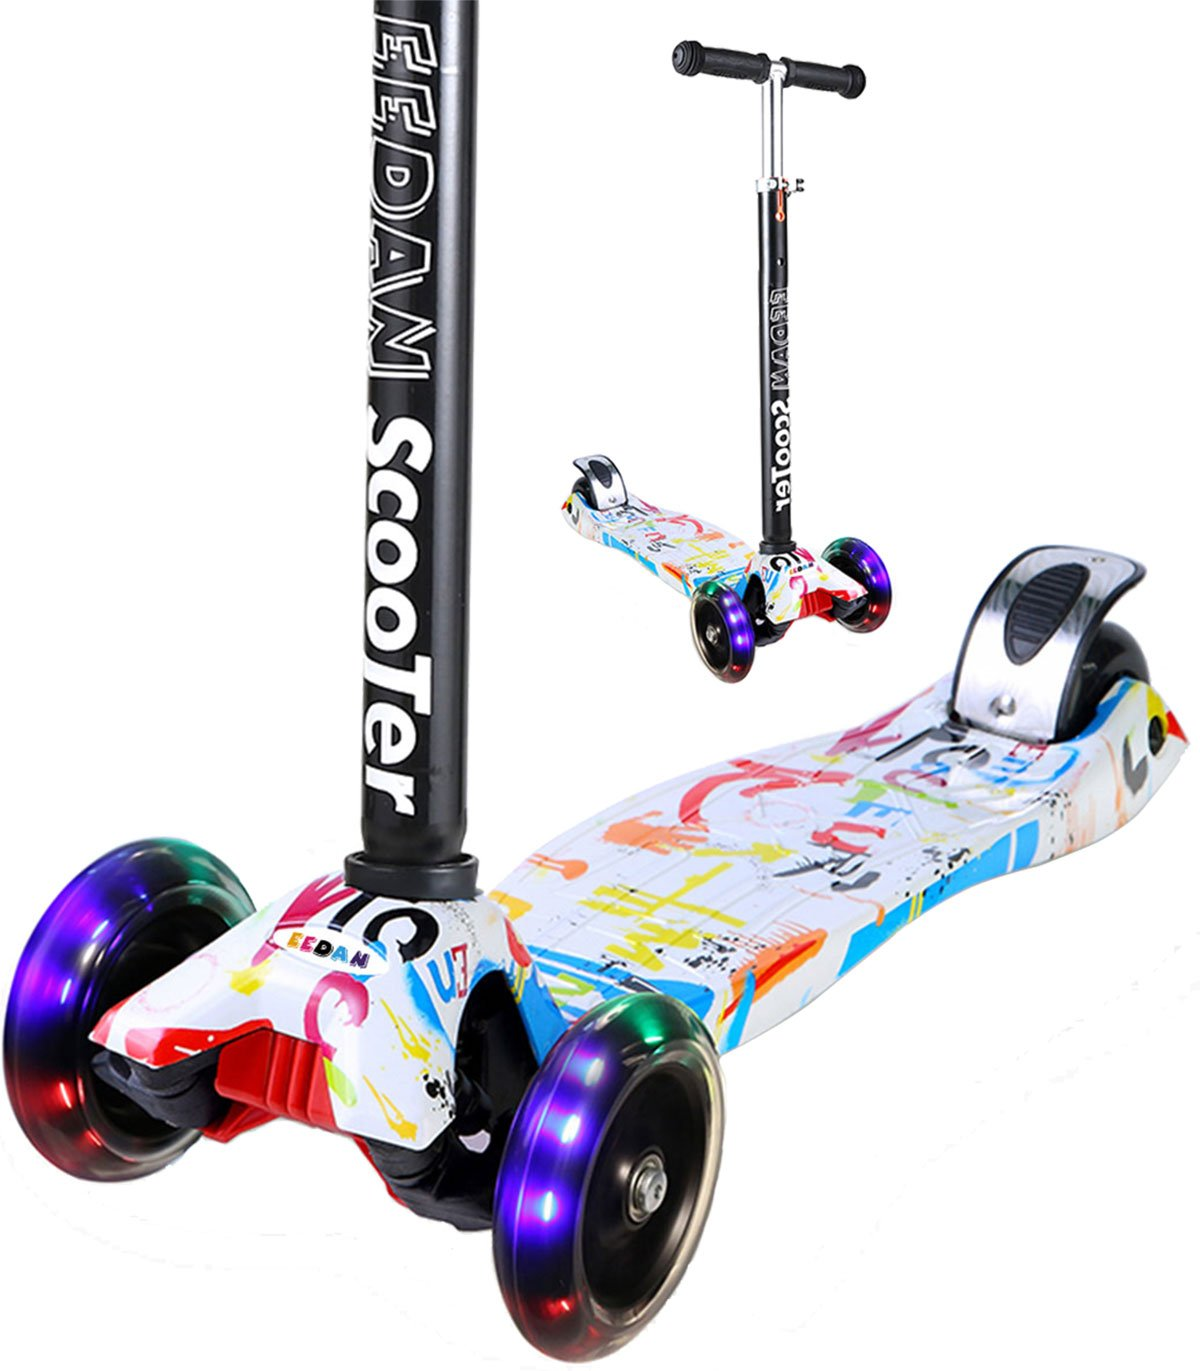 EEDAN Scooter for Kids 3 Wheel T-bar Adjustable Height Handle Kick Scooters with Max Glider Deluxe PU Flashing Wheels Wide Deck for Children from 5 to 14 Year-Old (Grafitti) by EEDAN